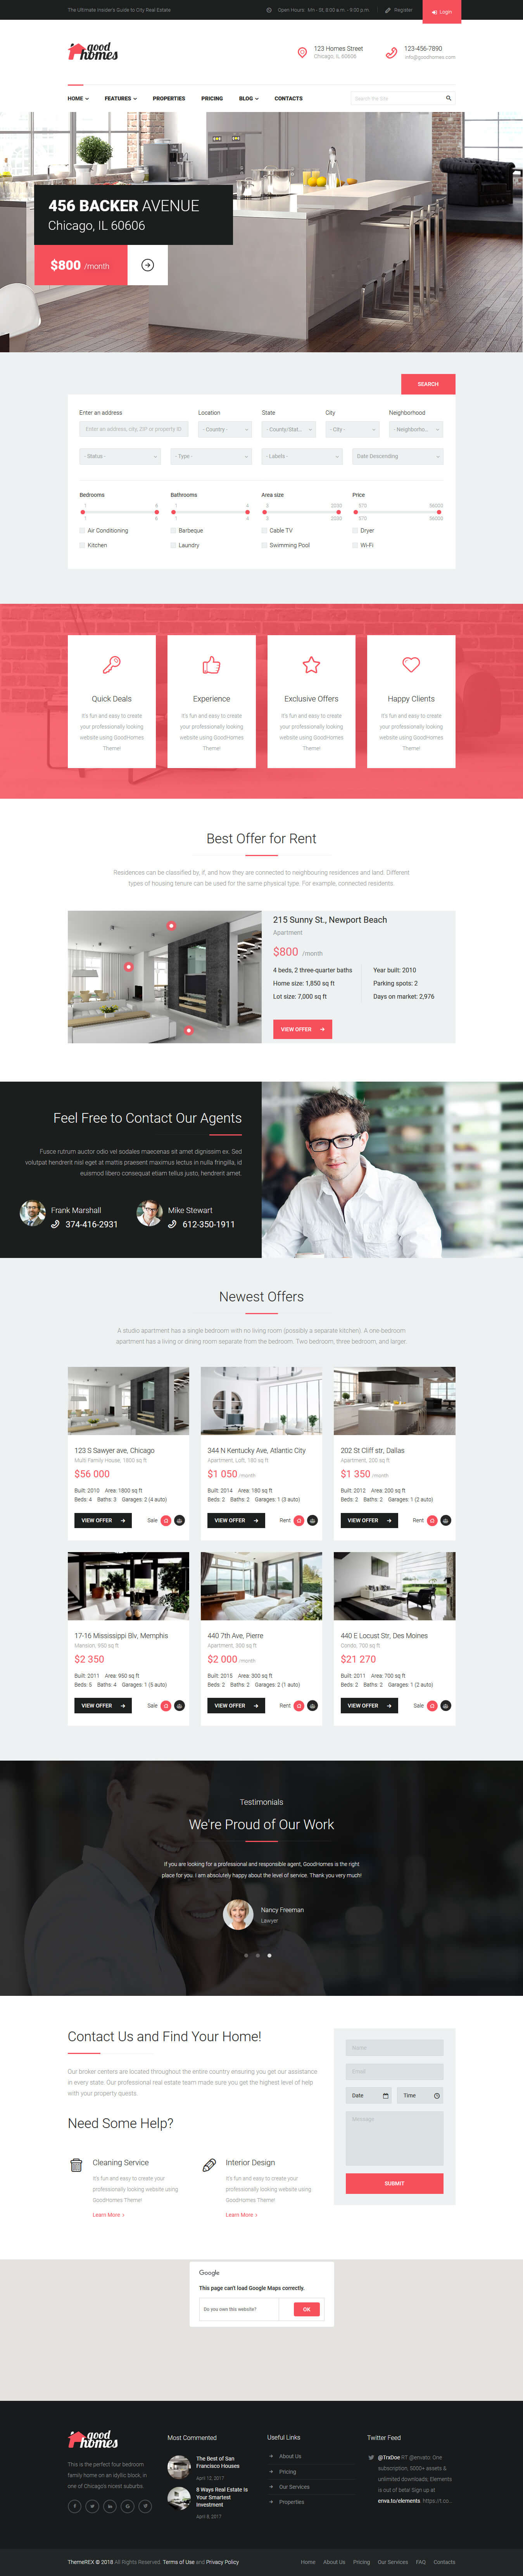 Good Homes - Best Premium Home Rental and Property WordPress Theme